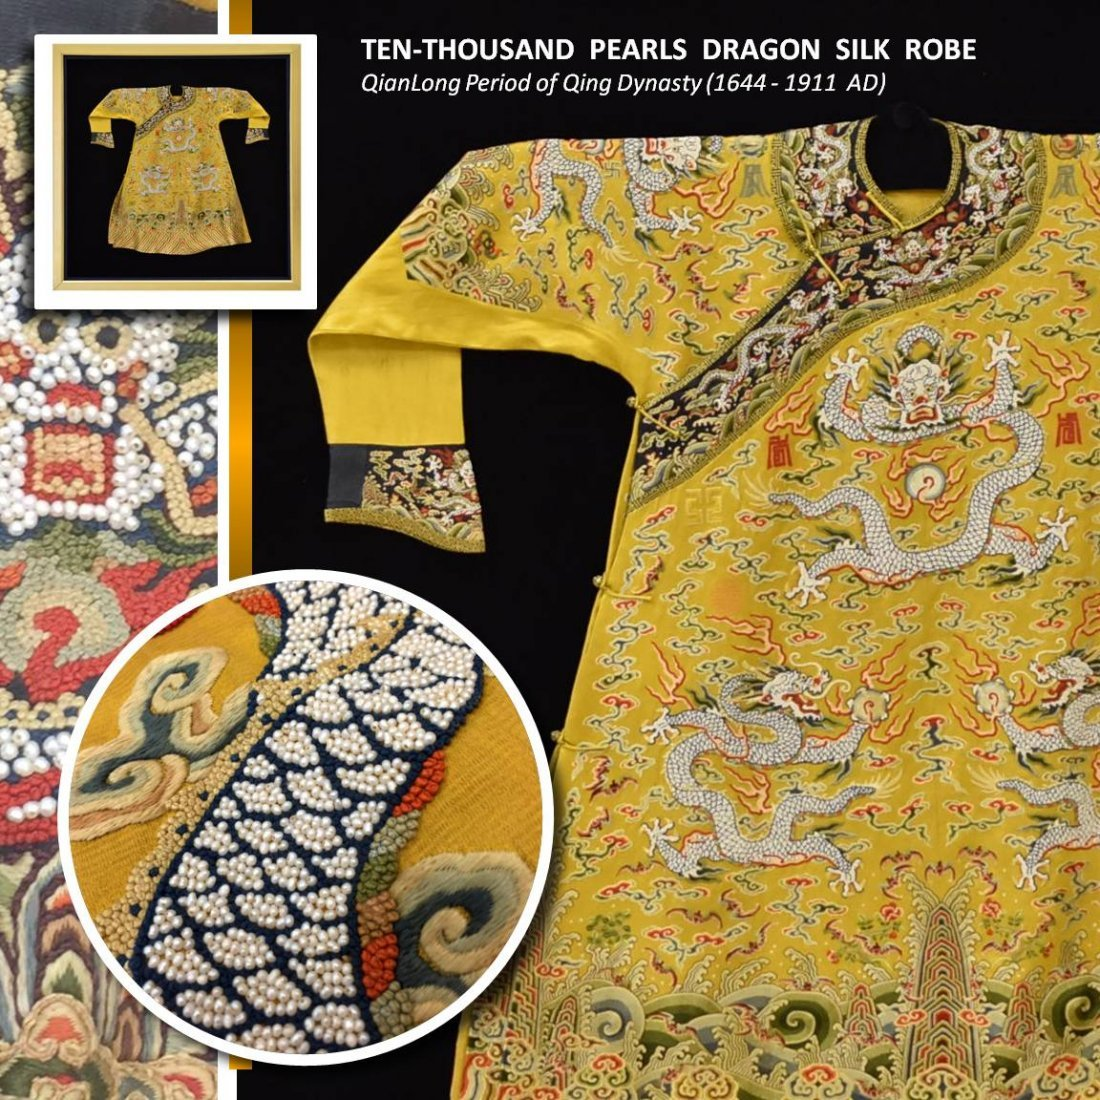 RARE 17/18TH C, TEN-THOUSANDS PEARLS DRAGON SILK ROBE